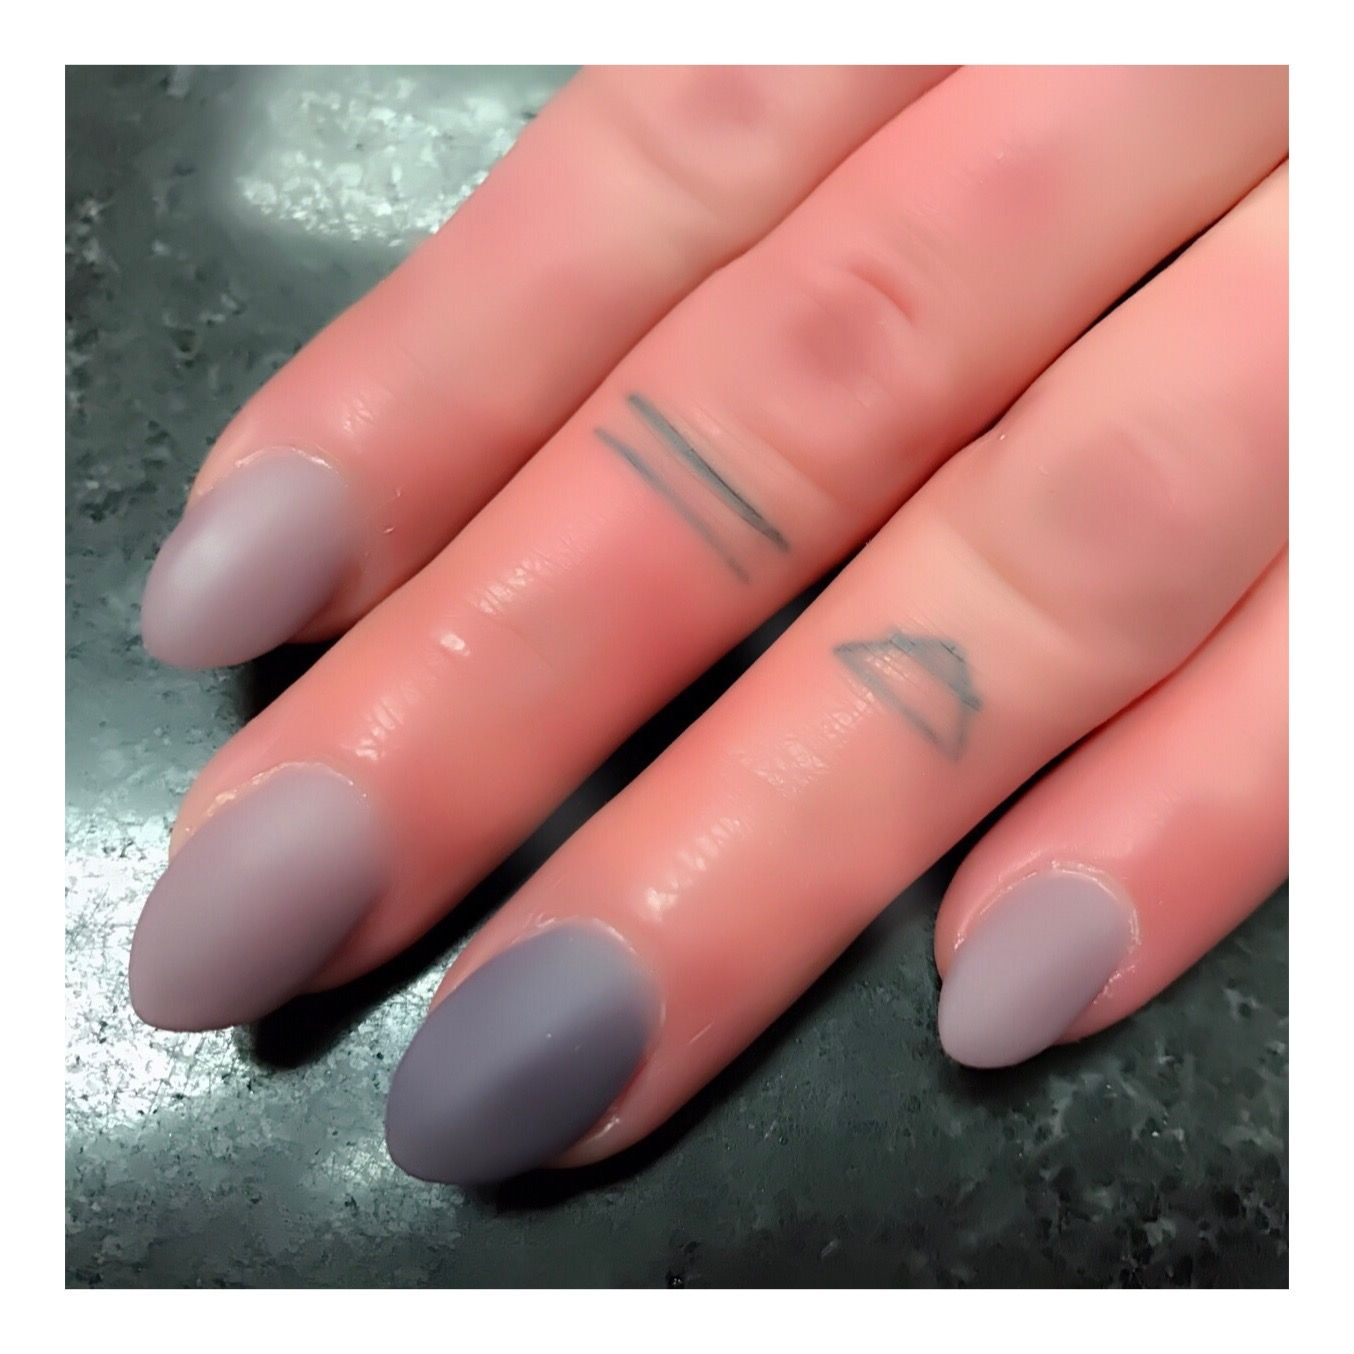 Pin by Breanna Miller on Nails   Pinterest   Amazing nails, Ombre ...